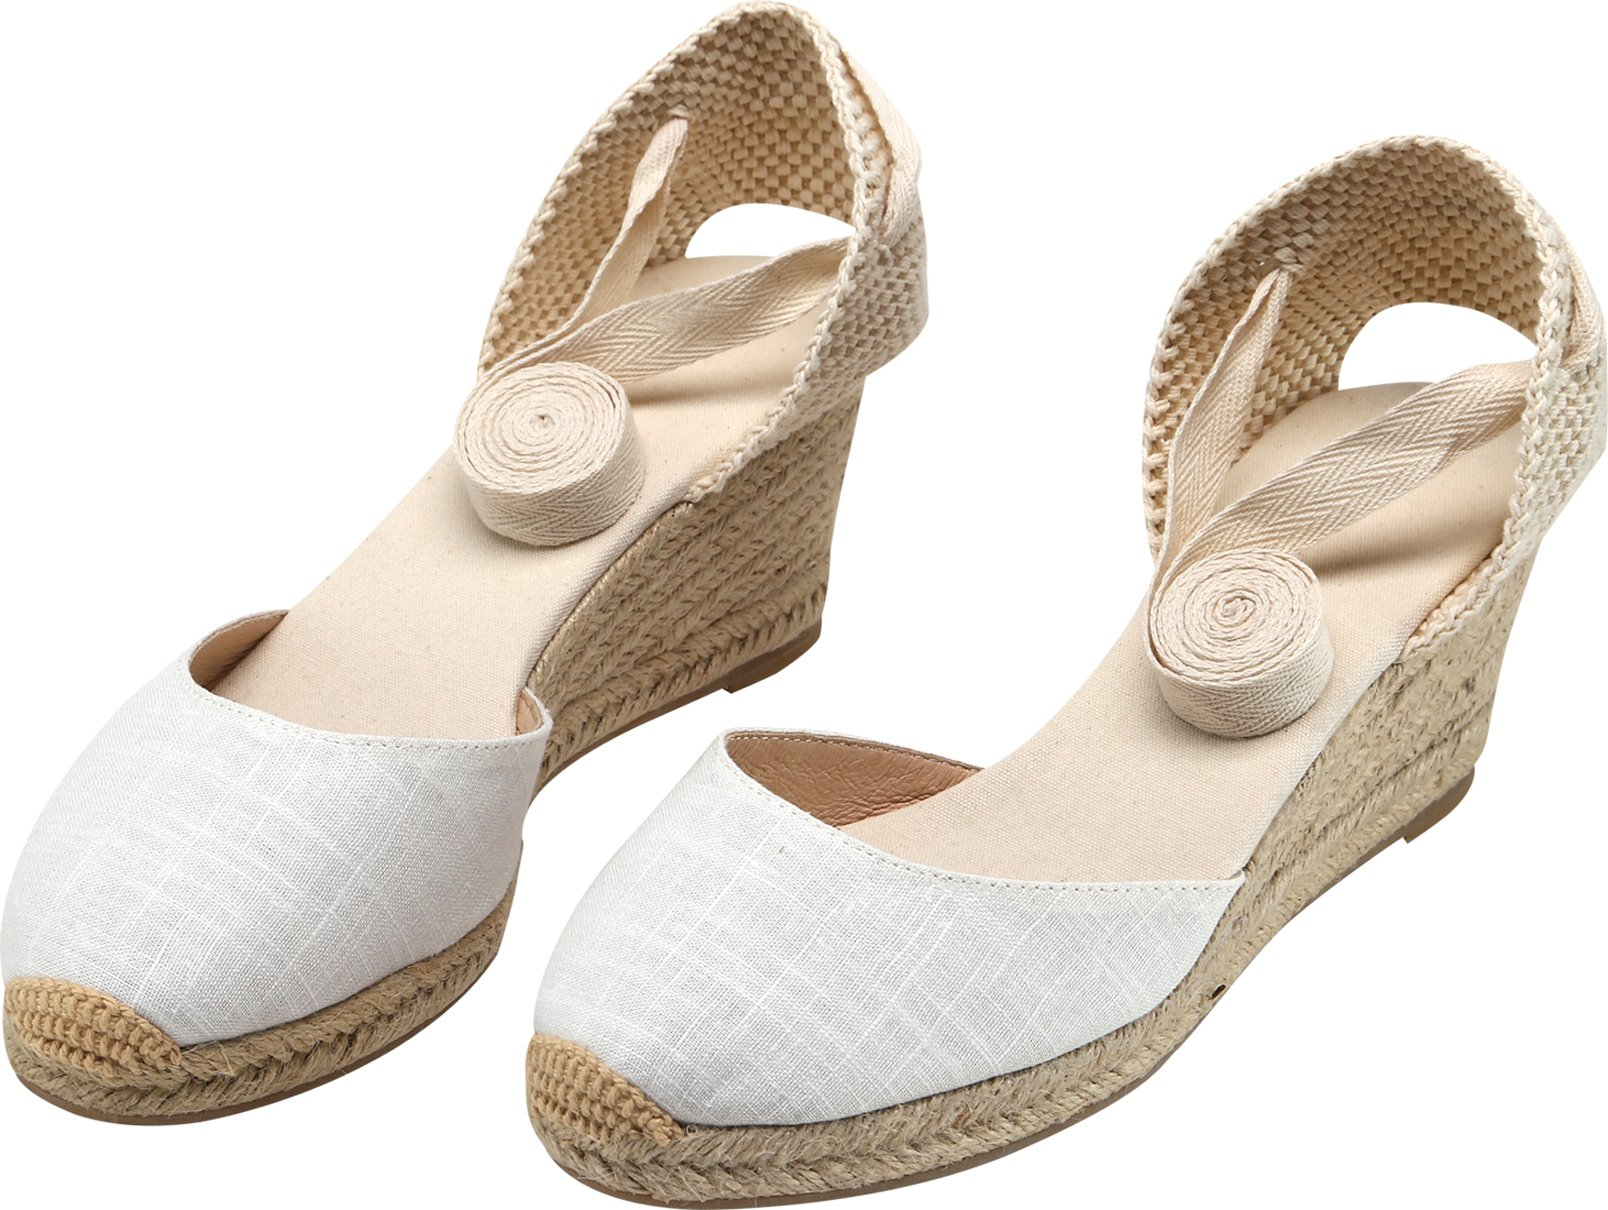 U-lite Women's Summer Leather Innersole Wedges Shoes, Ankle-Wrap Pompom Sandals White7 by U-lite (Image #4)